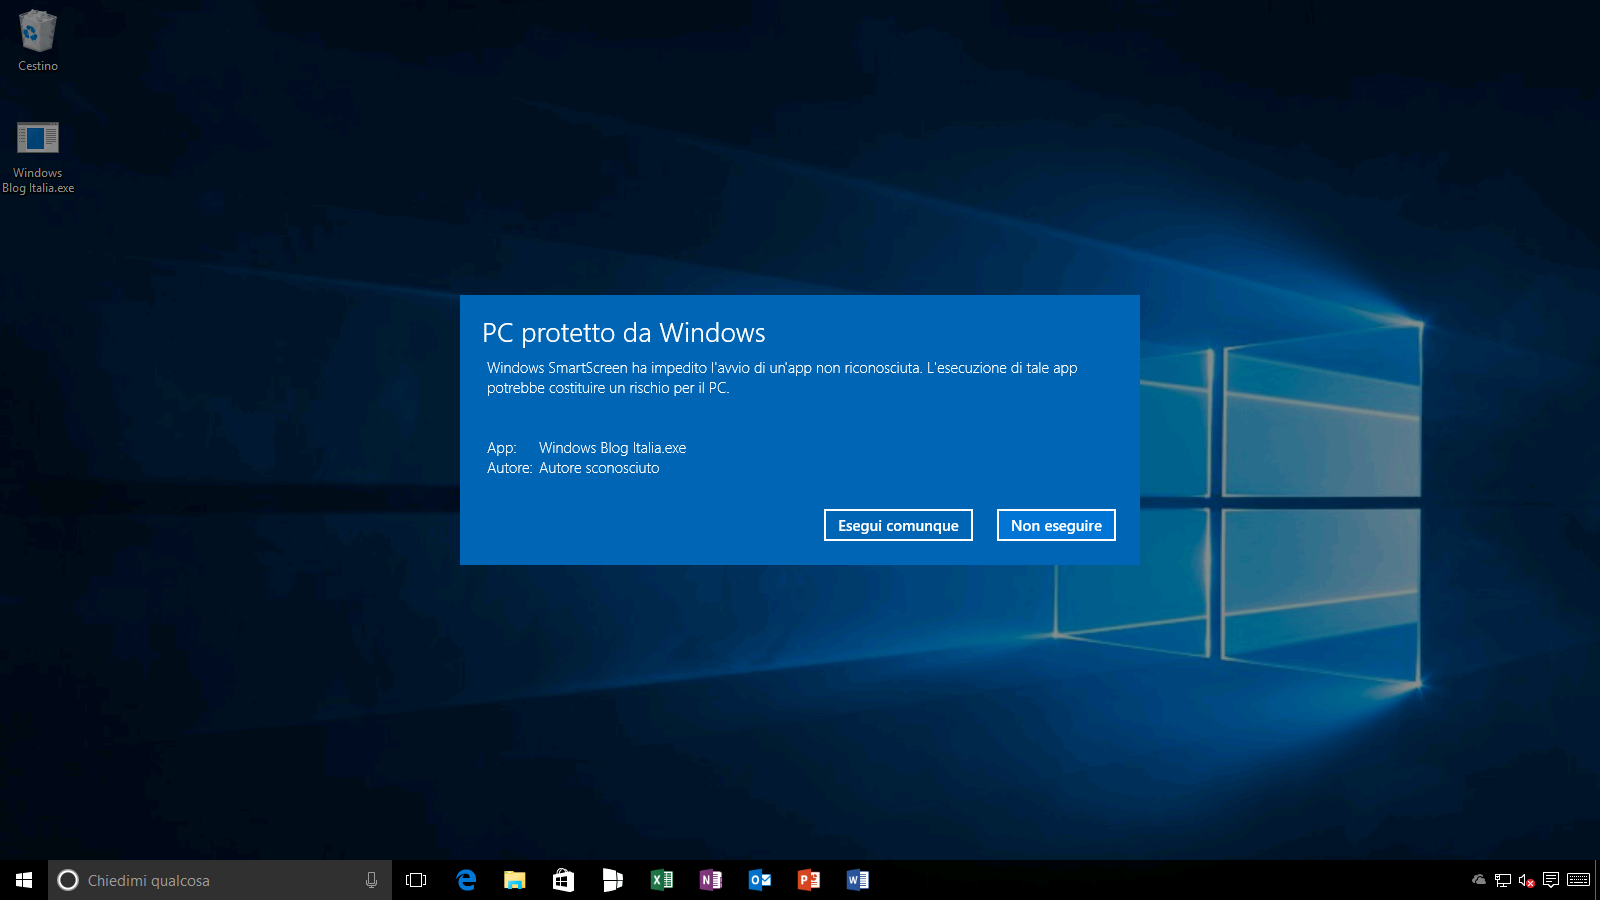 PC protetto da Windows (2) - Windows 10